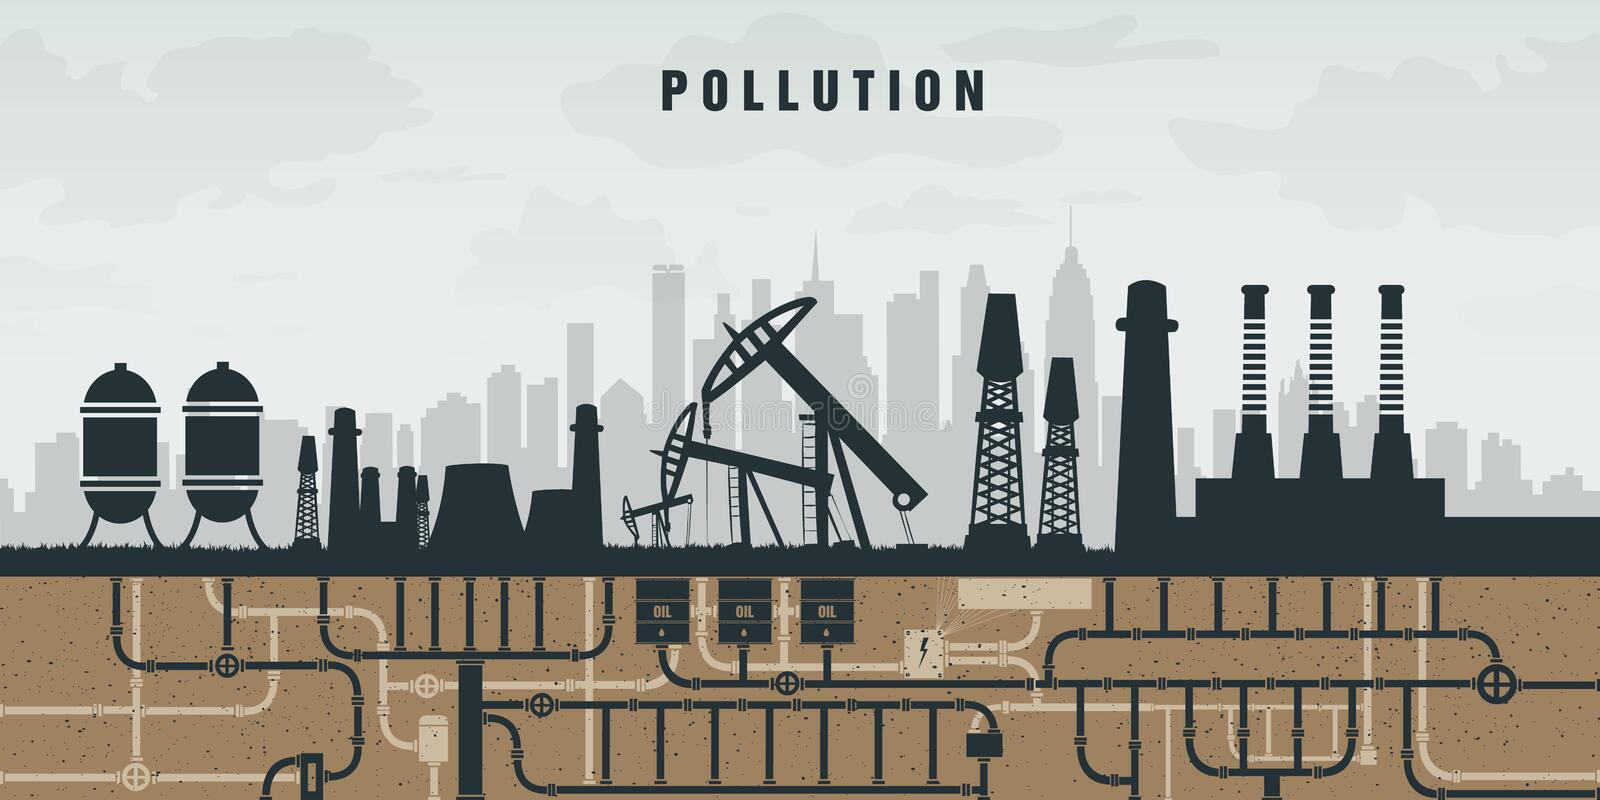 Pollution of the environment by plants, oil and vector illustration